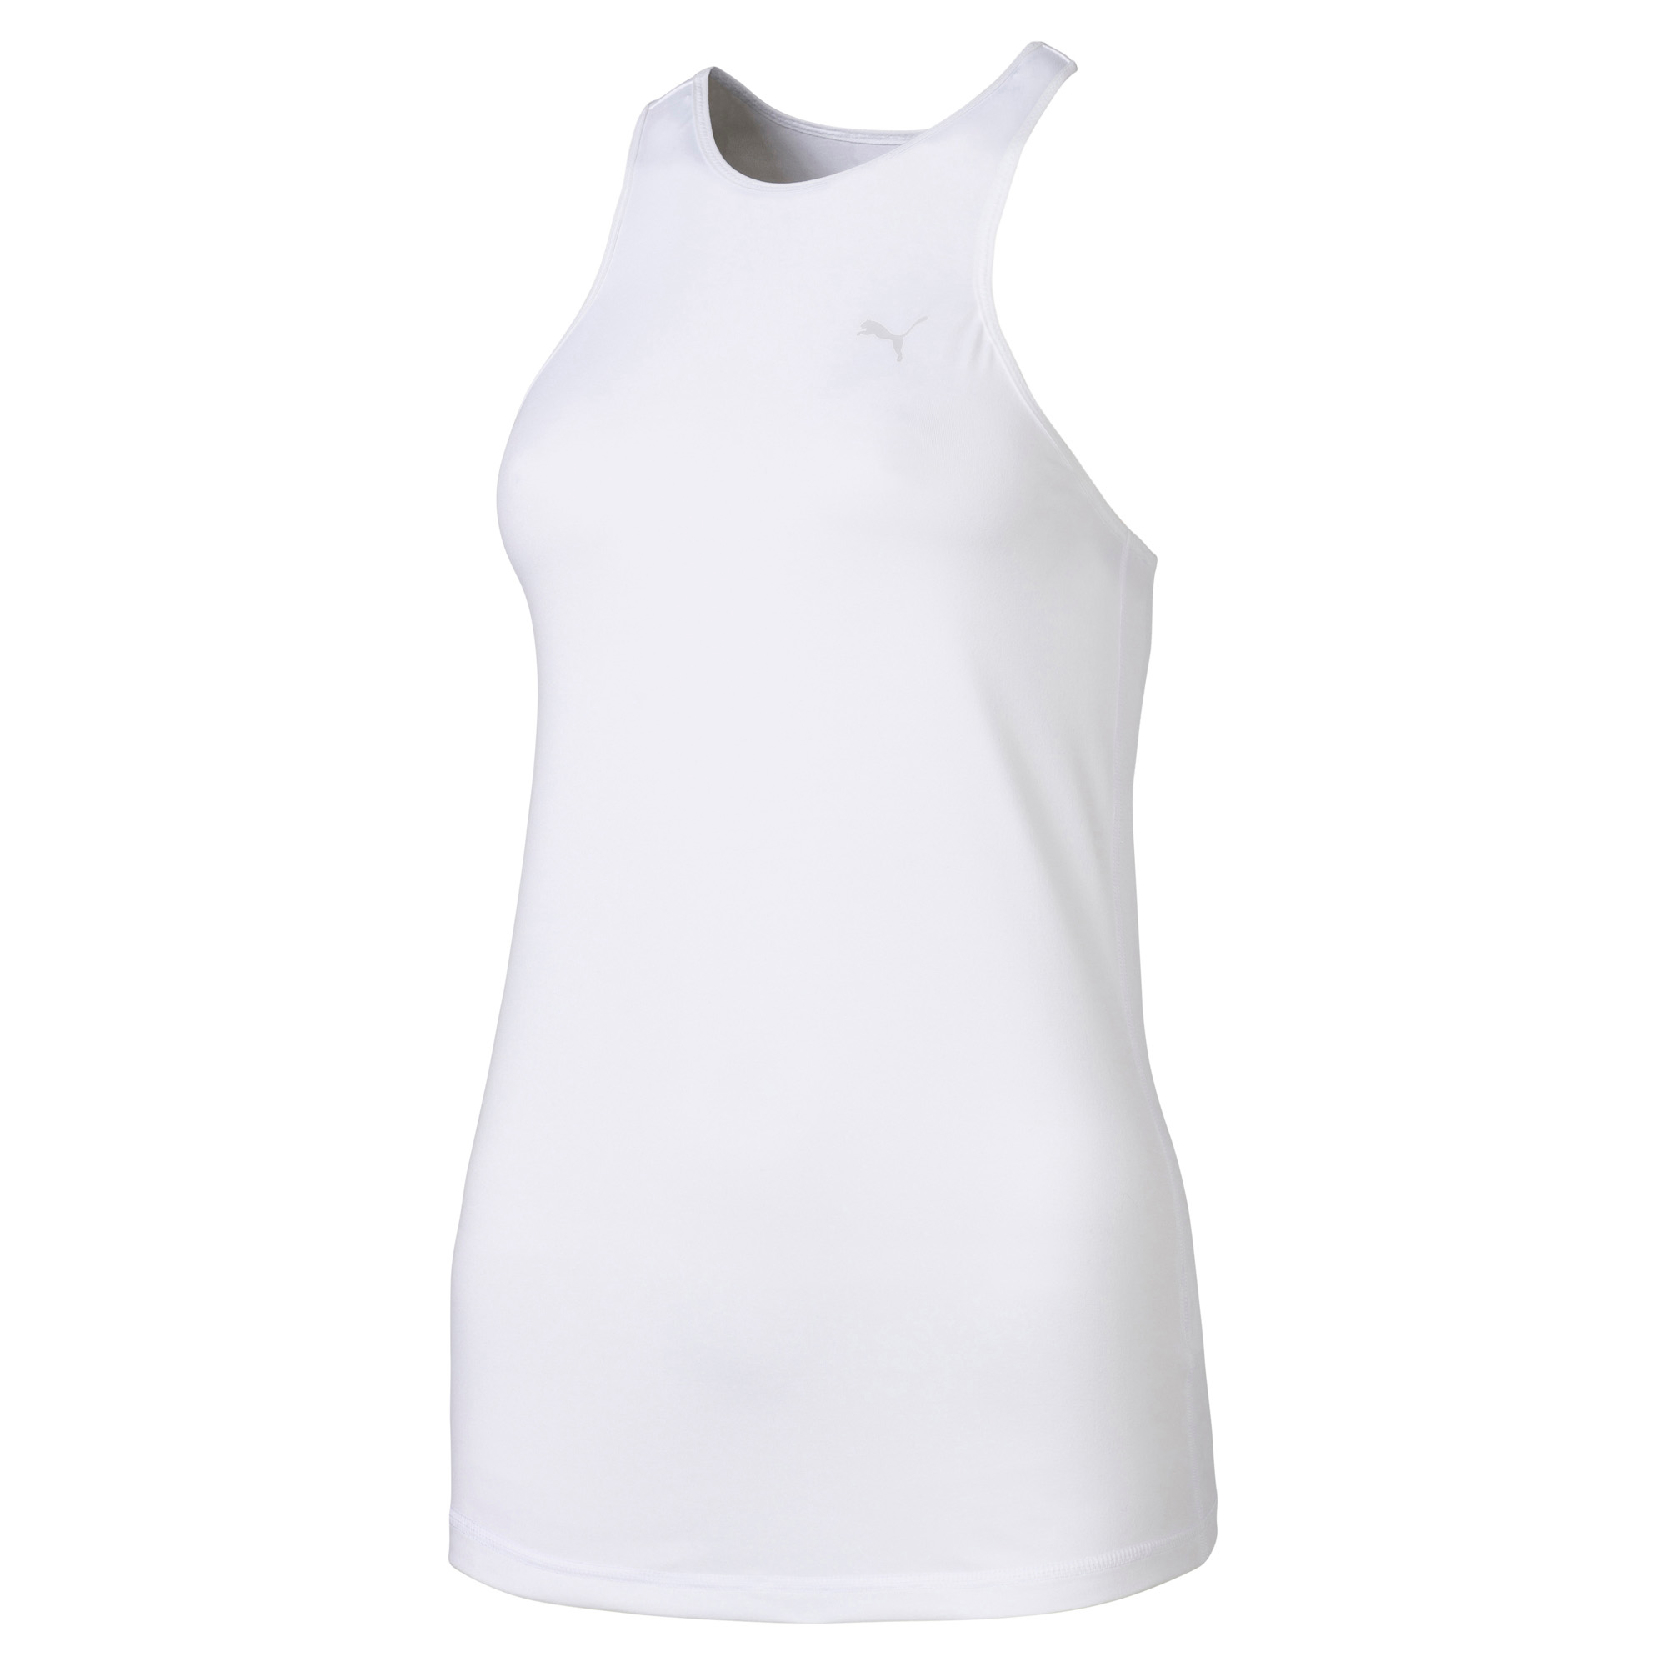 Puma Women's Feel It Tank | Jerseys